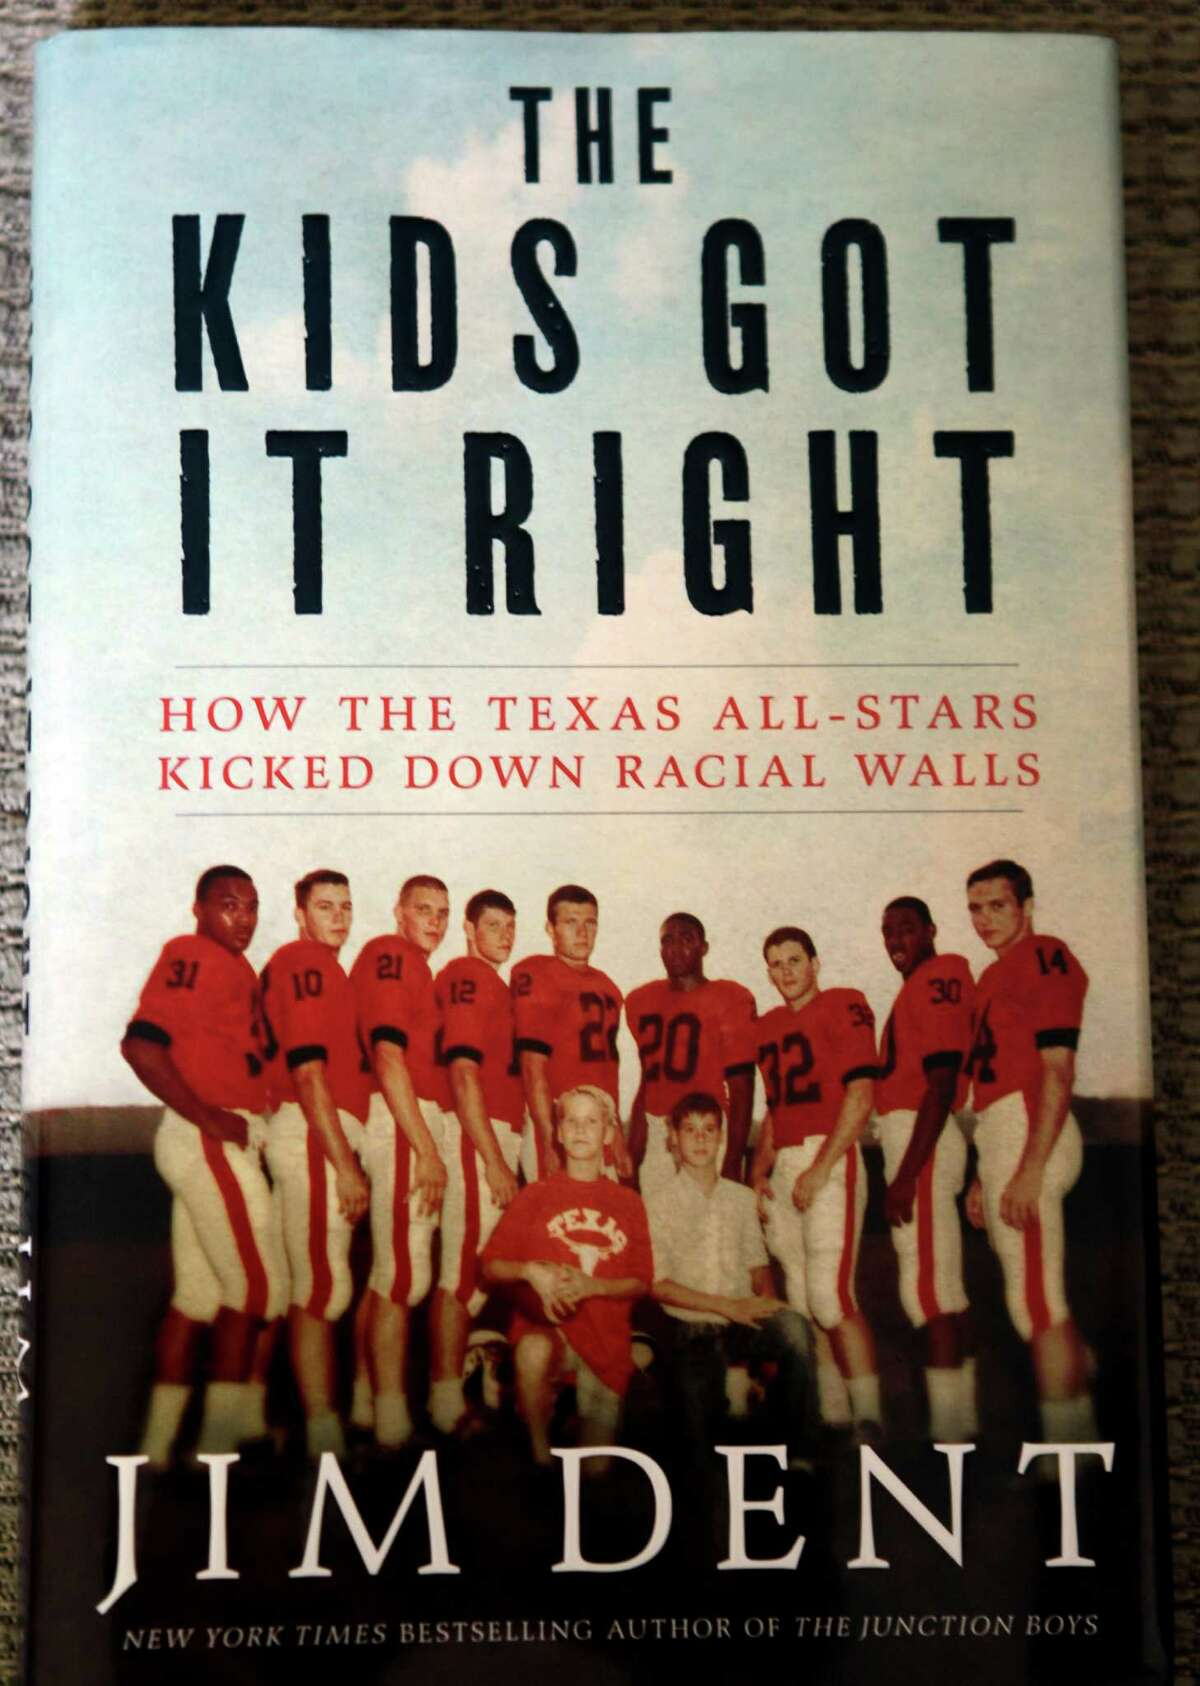 """Photo copy of book titled """"The Kids Got It Right: How the Texas All-Stars Kicked Down Racial Walls"""" by Jim Dent that features Jerry LeVias shown Wednesday, Aug. 21, 2013, in Houston. LeVias a former NFL player helped break the color barrier in football in the state of Texas. ( Melissa Phillip / Houston Chronicle )"""